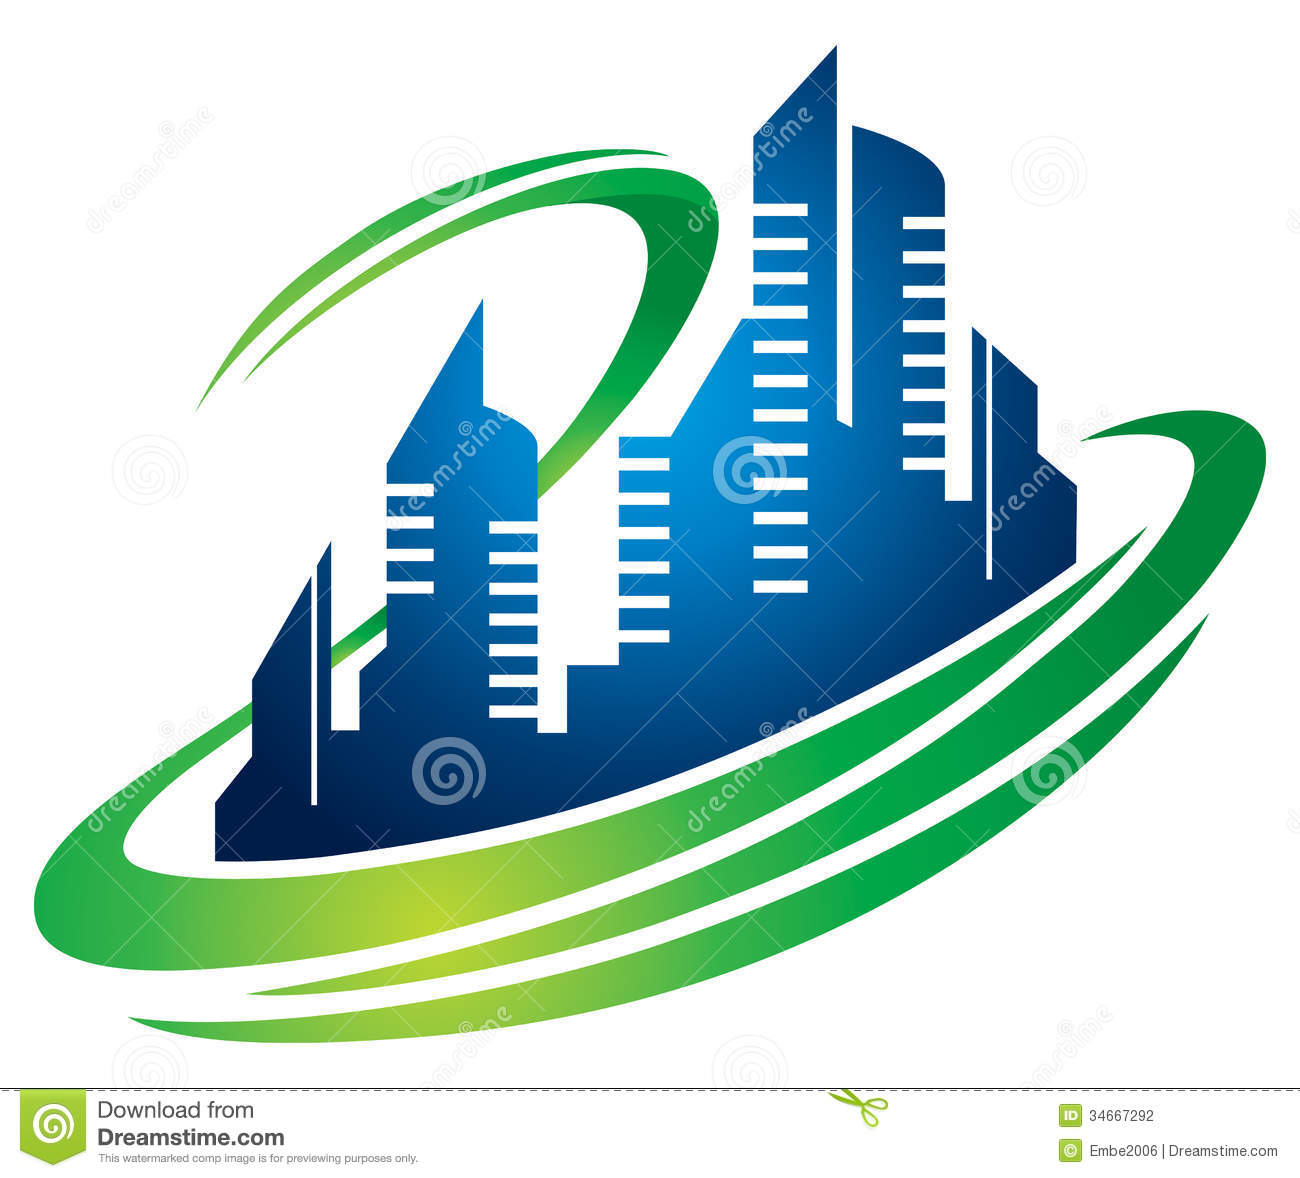 Building logo clipart. Stock photos images pictures